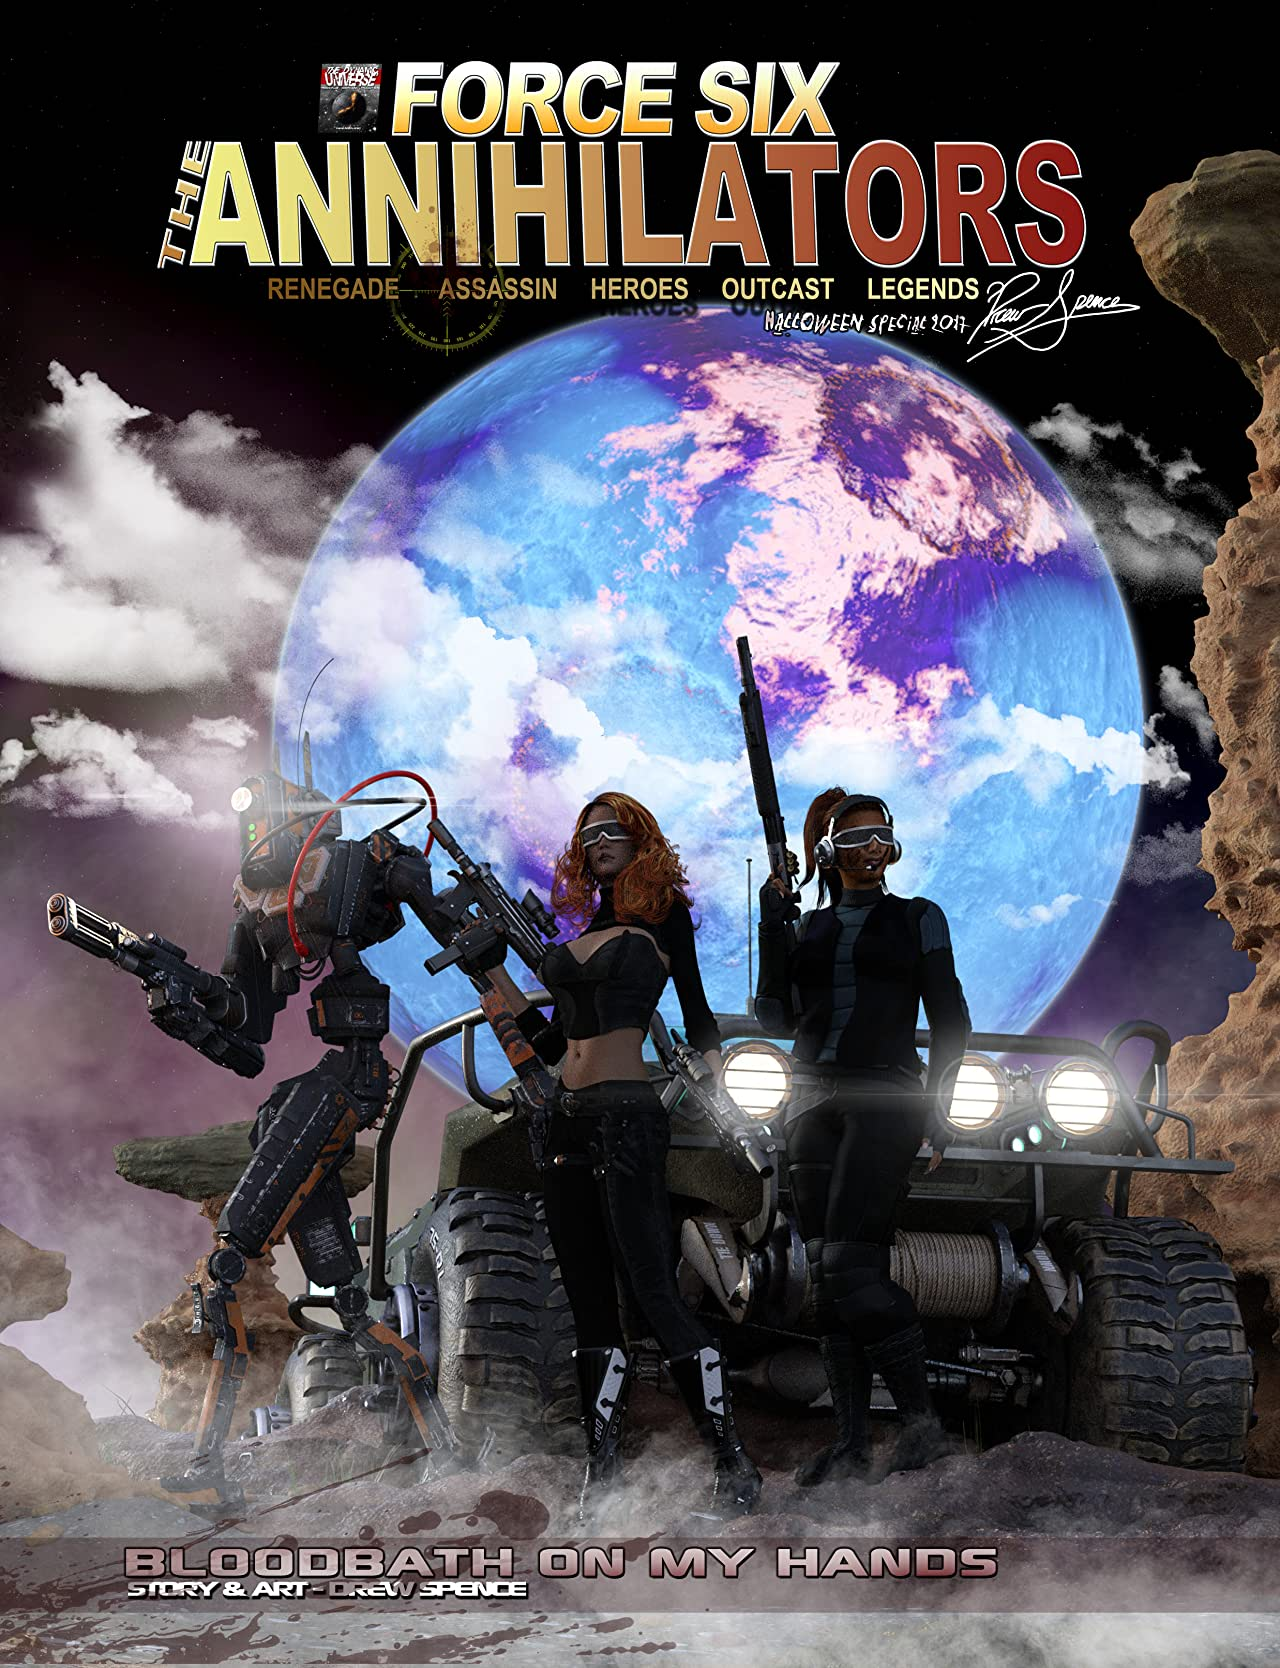 Force Six, The Annihilators: Bloodbath On My Hands